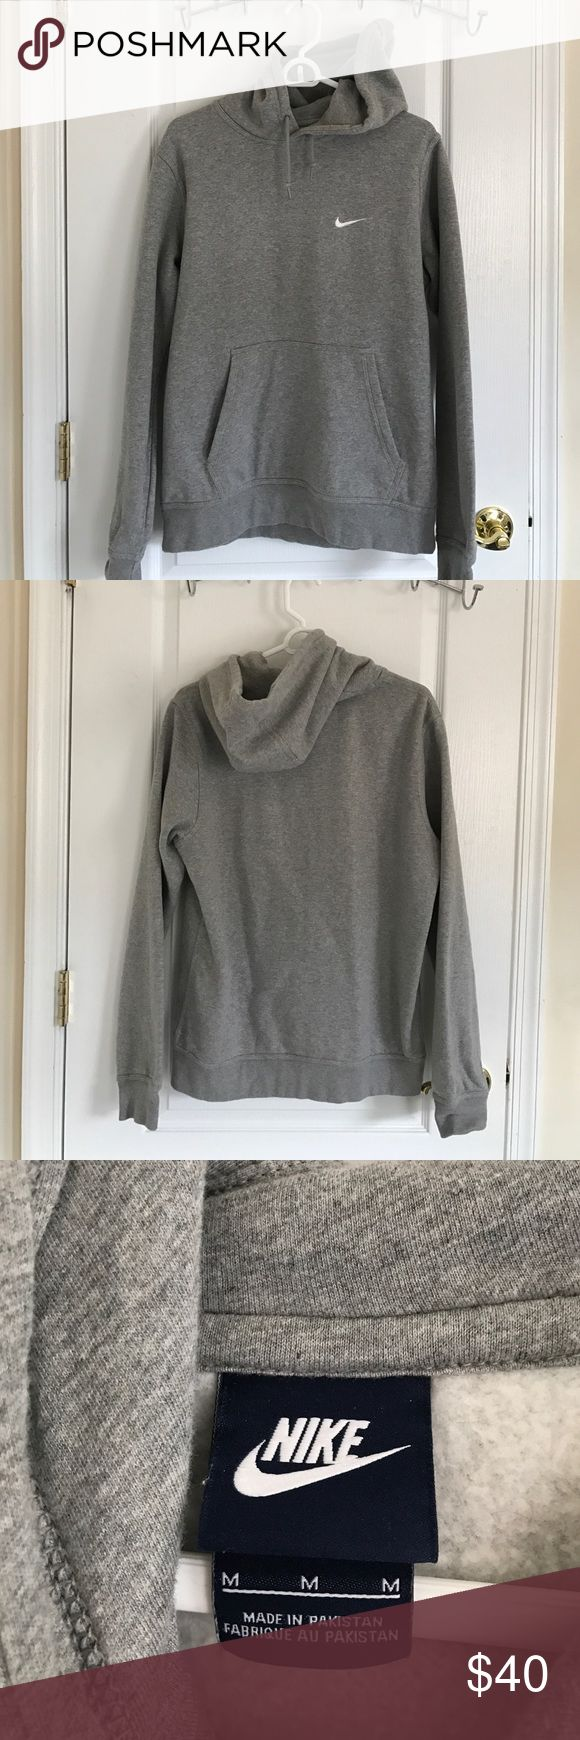 Nike grey women's hoodie size M Nike grey hoodie worn once gently size M fits true to size. Nike Tops Sweatshirts & Hoodies